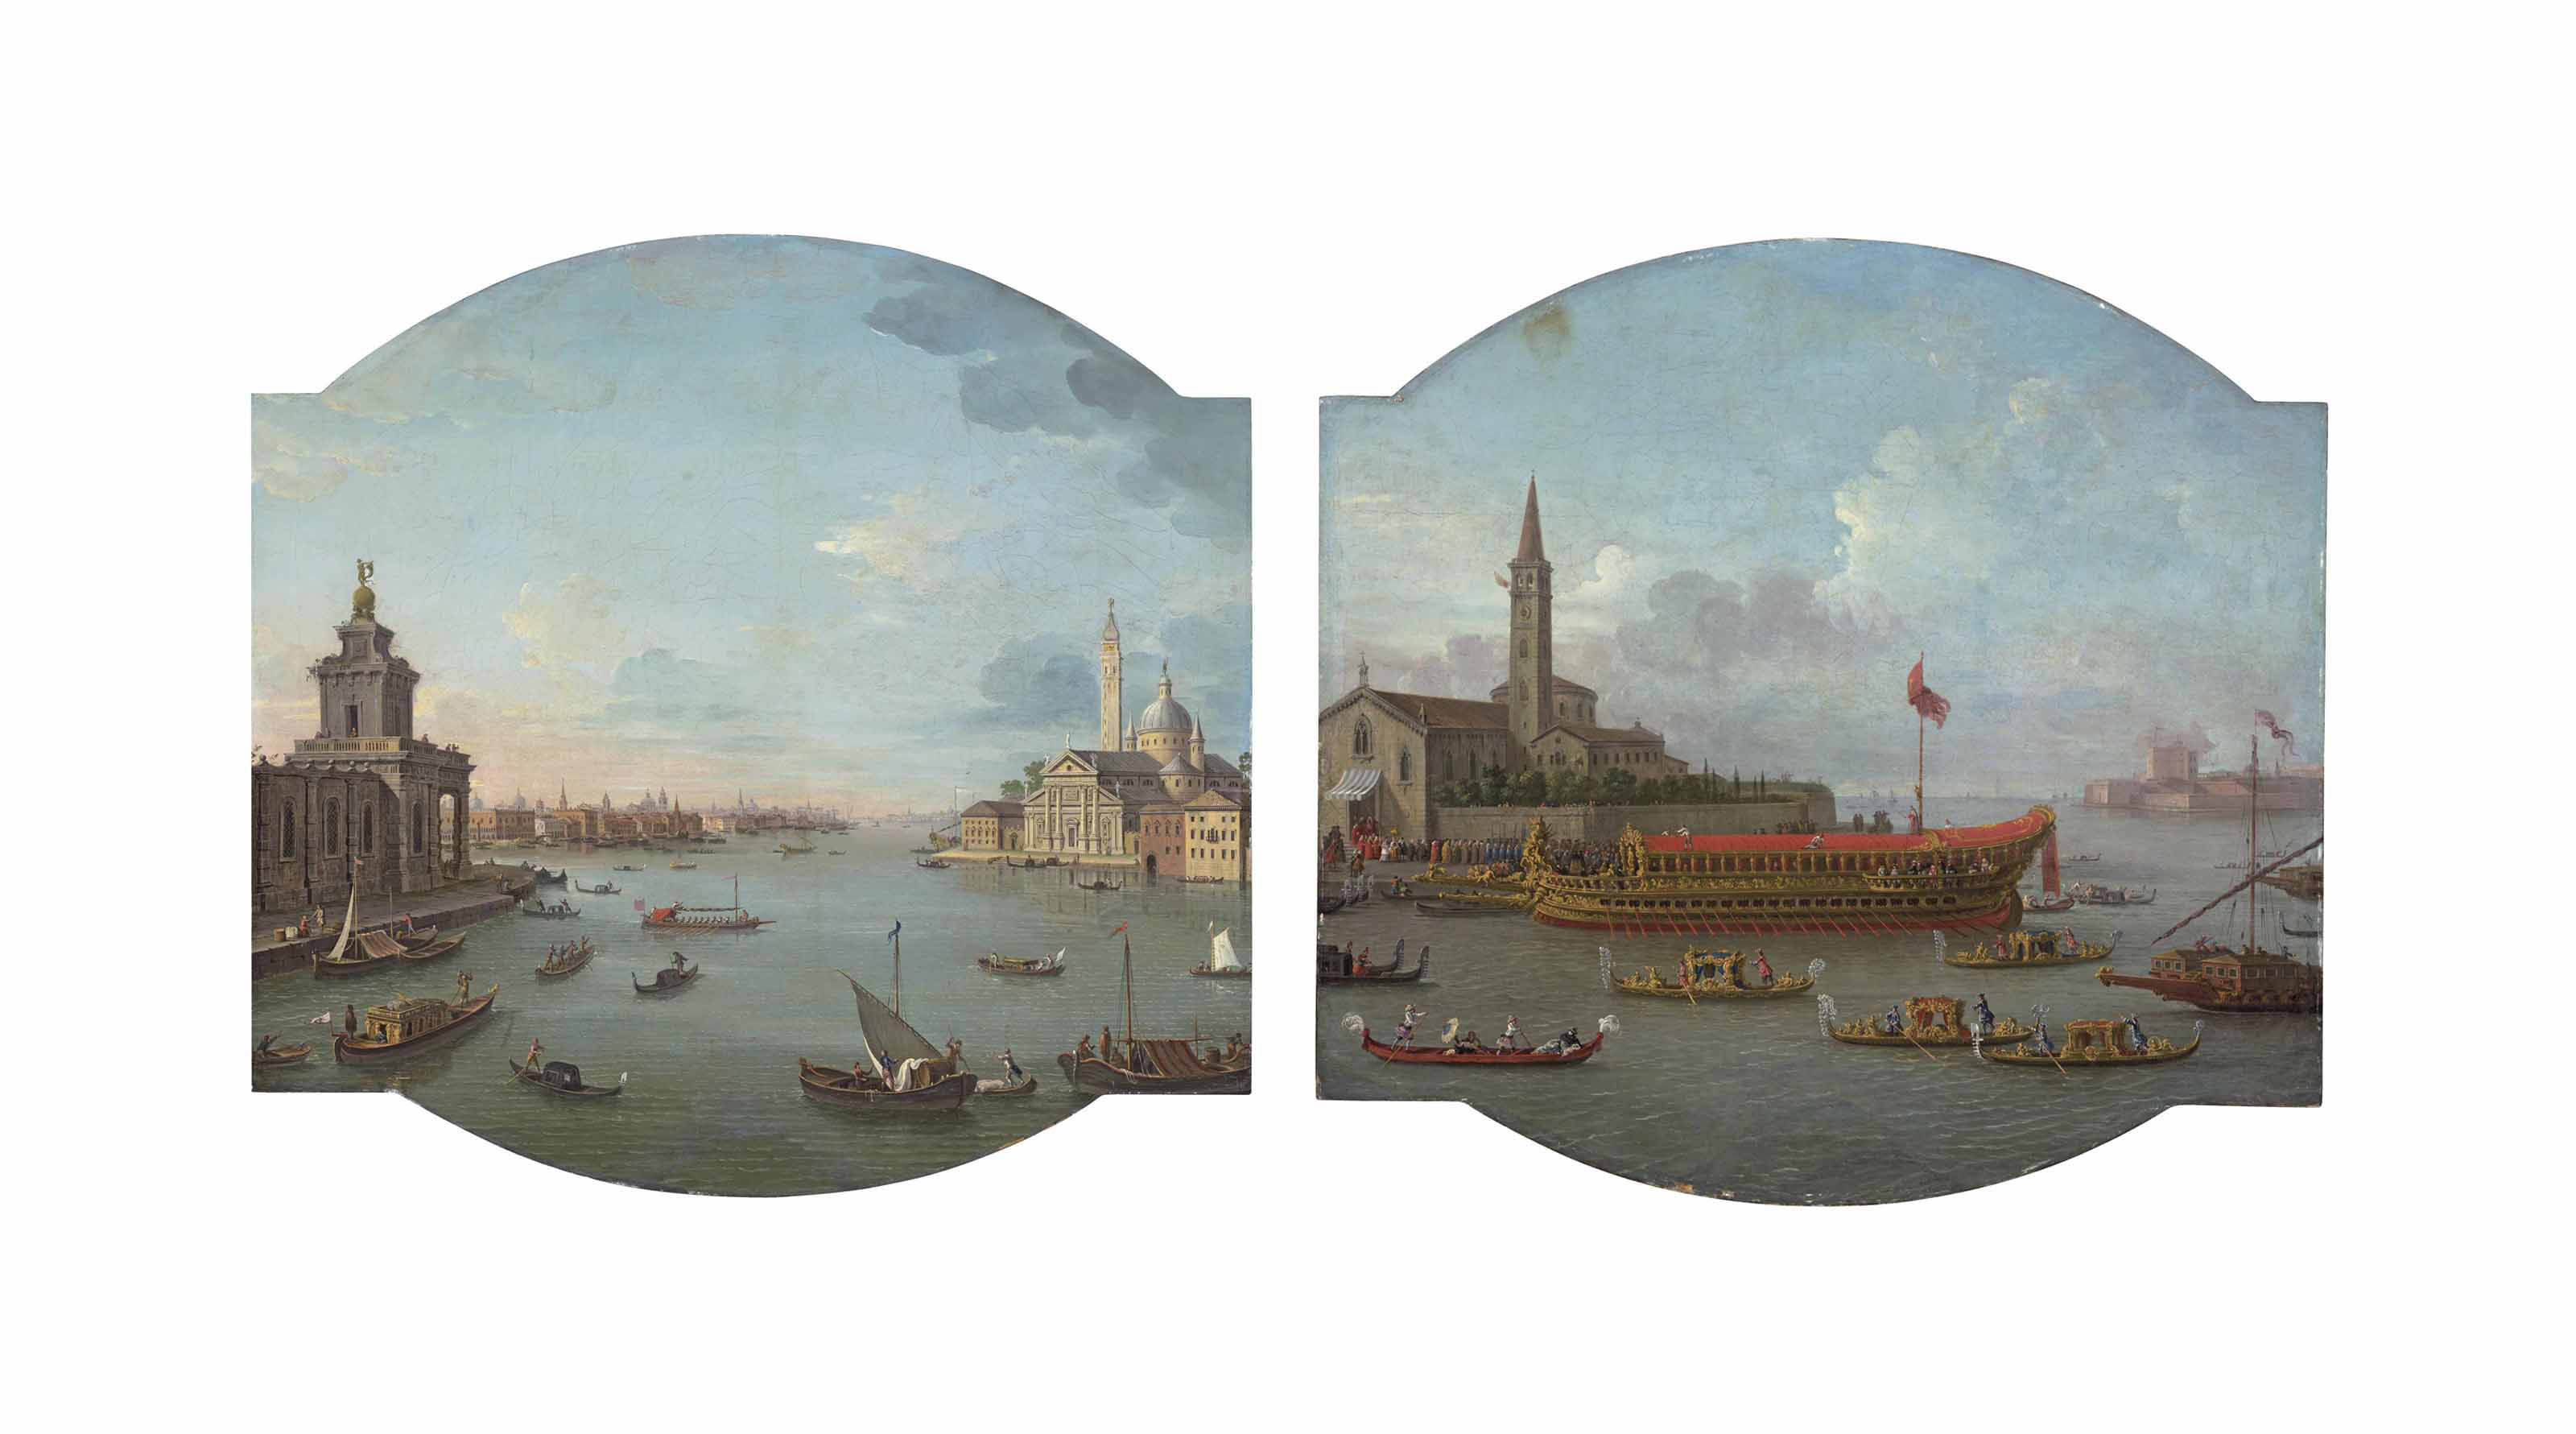 A View of San Giorgio Maggiore, Venice, with the Punta della Dogana in the foreground; and A view of the Bucintoro anchored in front of San Nicolò al Lido, Venice, for the ceremony of the 'Sposalizio del Mare'